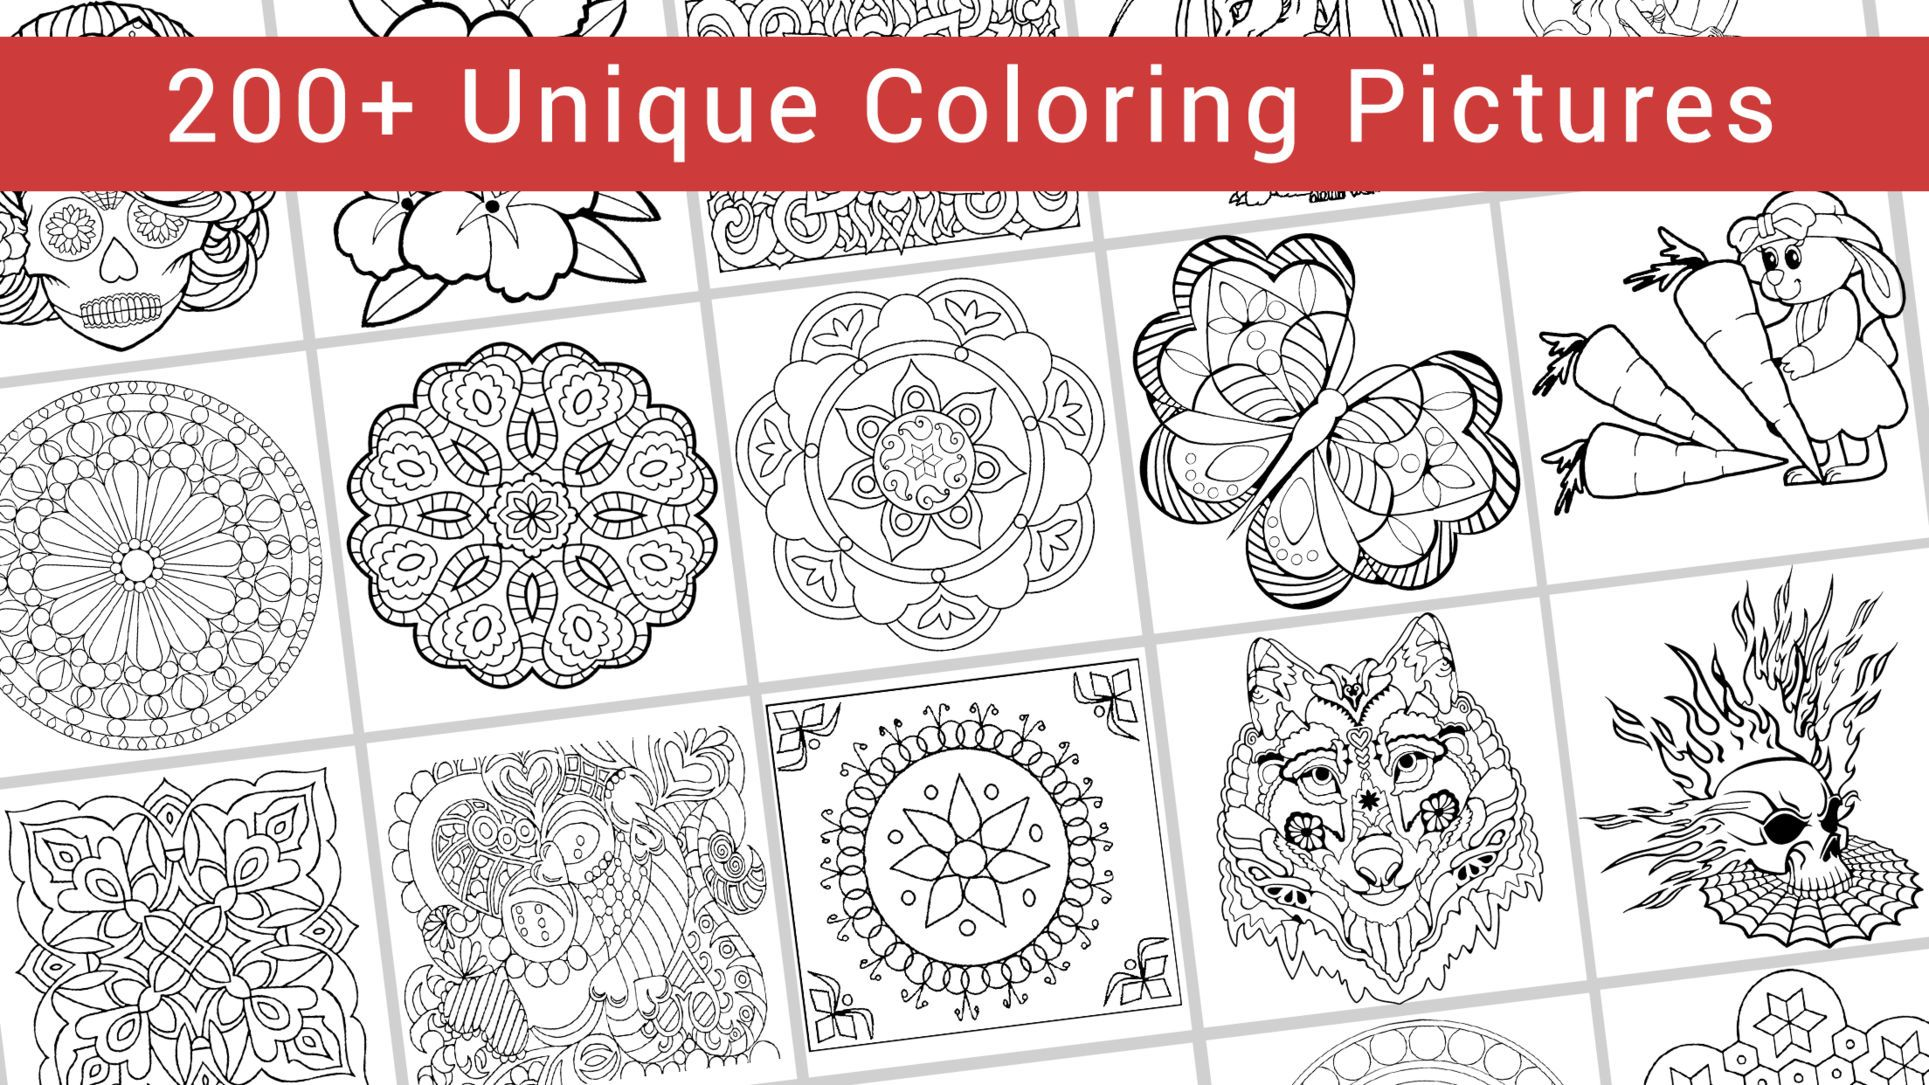 Colorat Color Therapy Coloring Book For Adults Free Michael Joan Free Amp Coloring Books Color Therapy Preschool Games